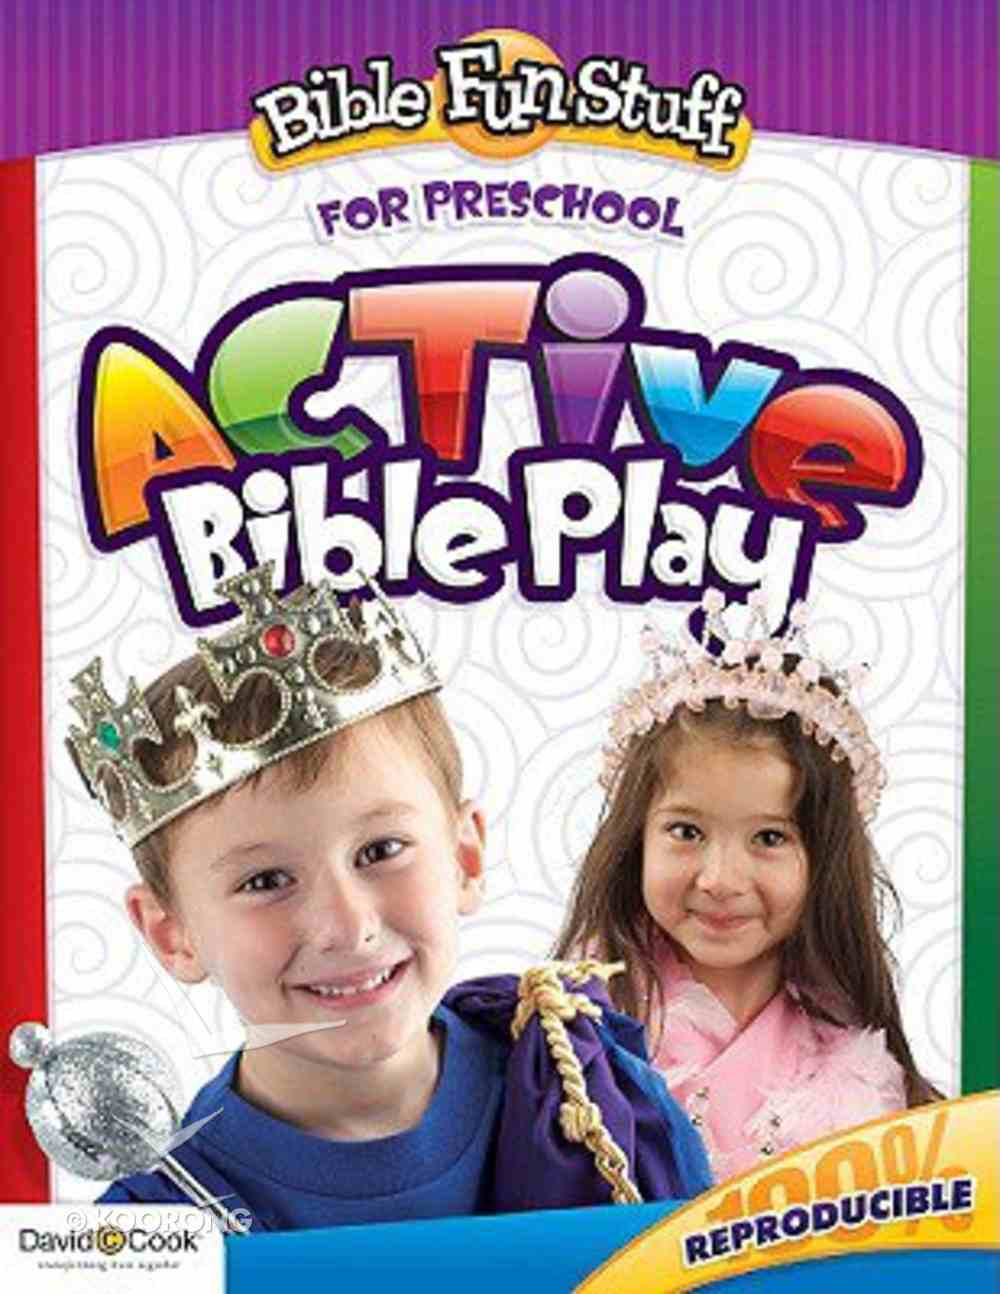 Active Bible Play (Reproducible) (For Preschool 3-5) (Bible Fun Stuff Series) Paperback